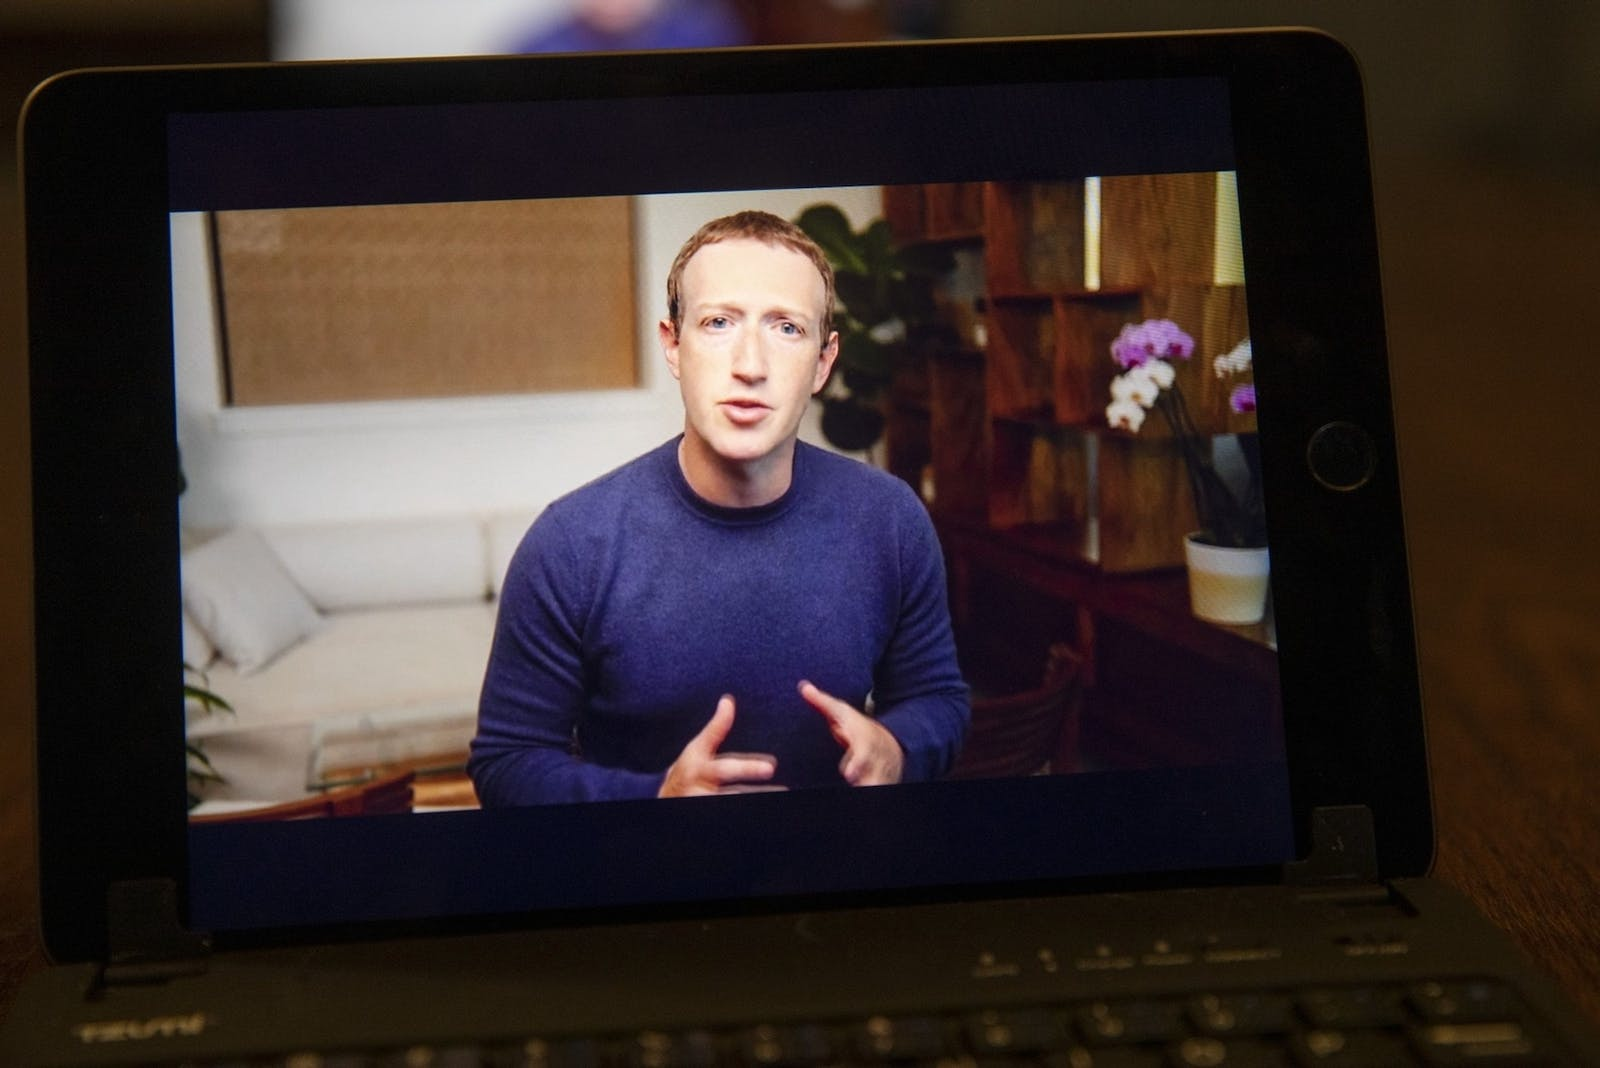 Facebook CEO Mark Zuckerberg speaks during the virtual F8 Developers Conference on June 2, 2021. Photo: Bloomberg